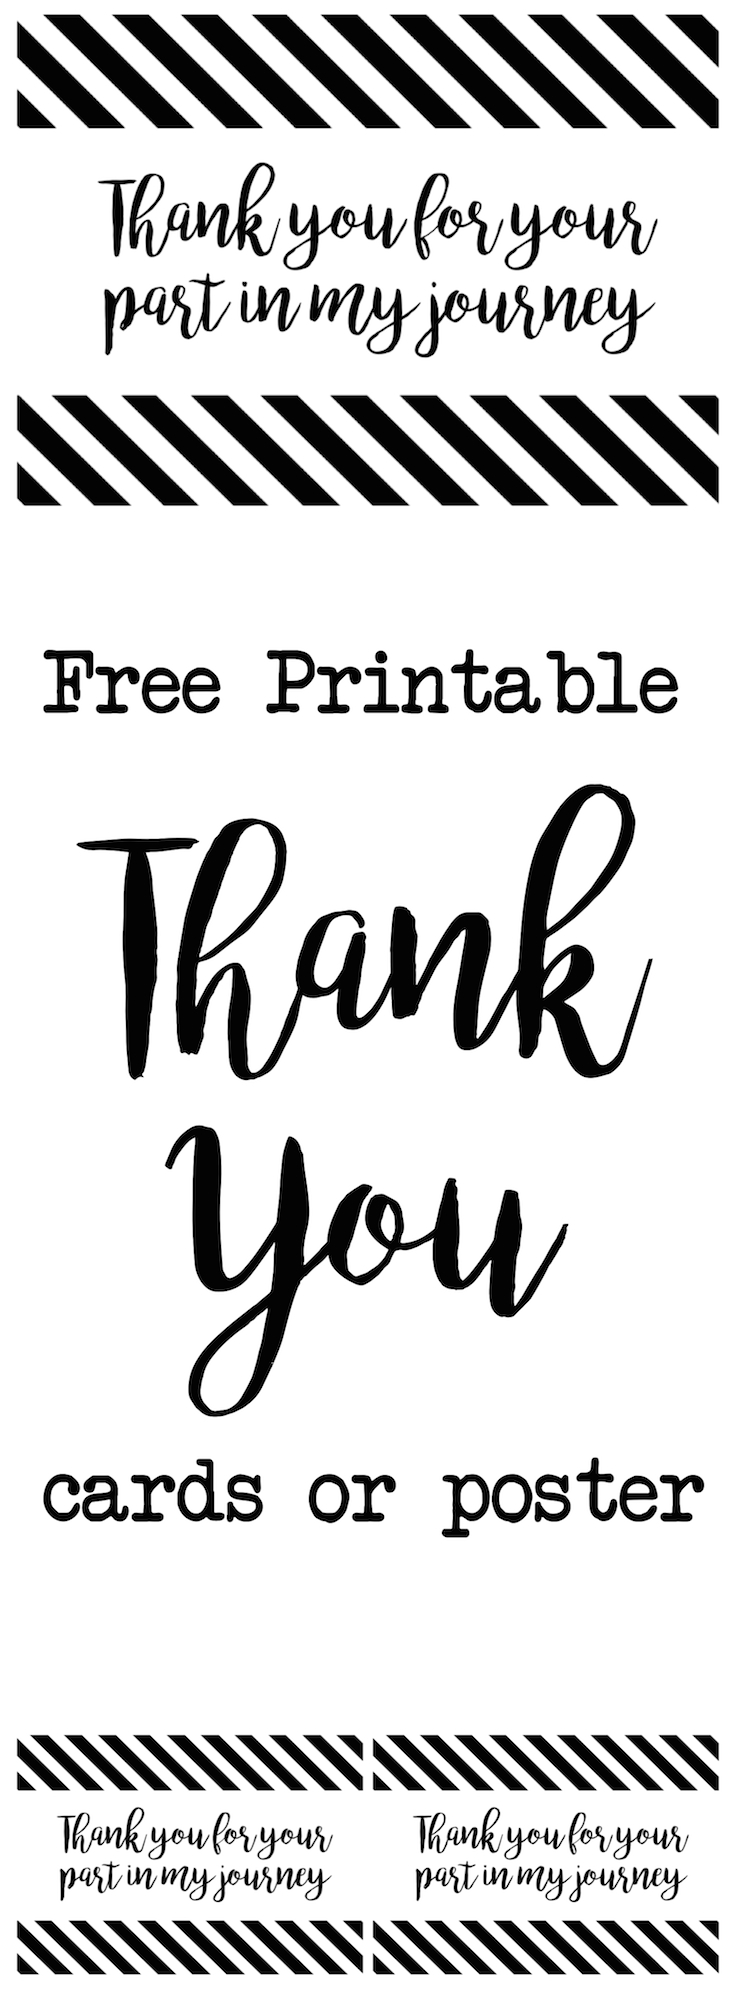 graphic regarding Free Printable Thank You Cards to Color named Thank On your own Playing cards or Poster Thank yourself for your aspect within my